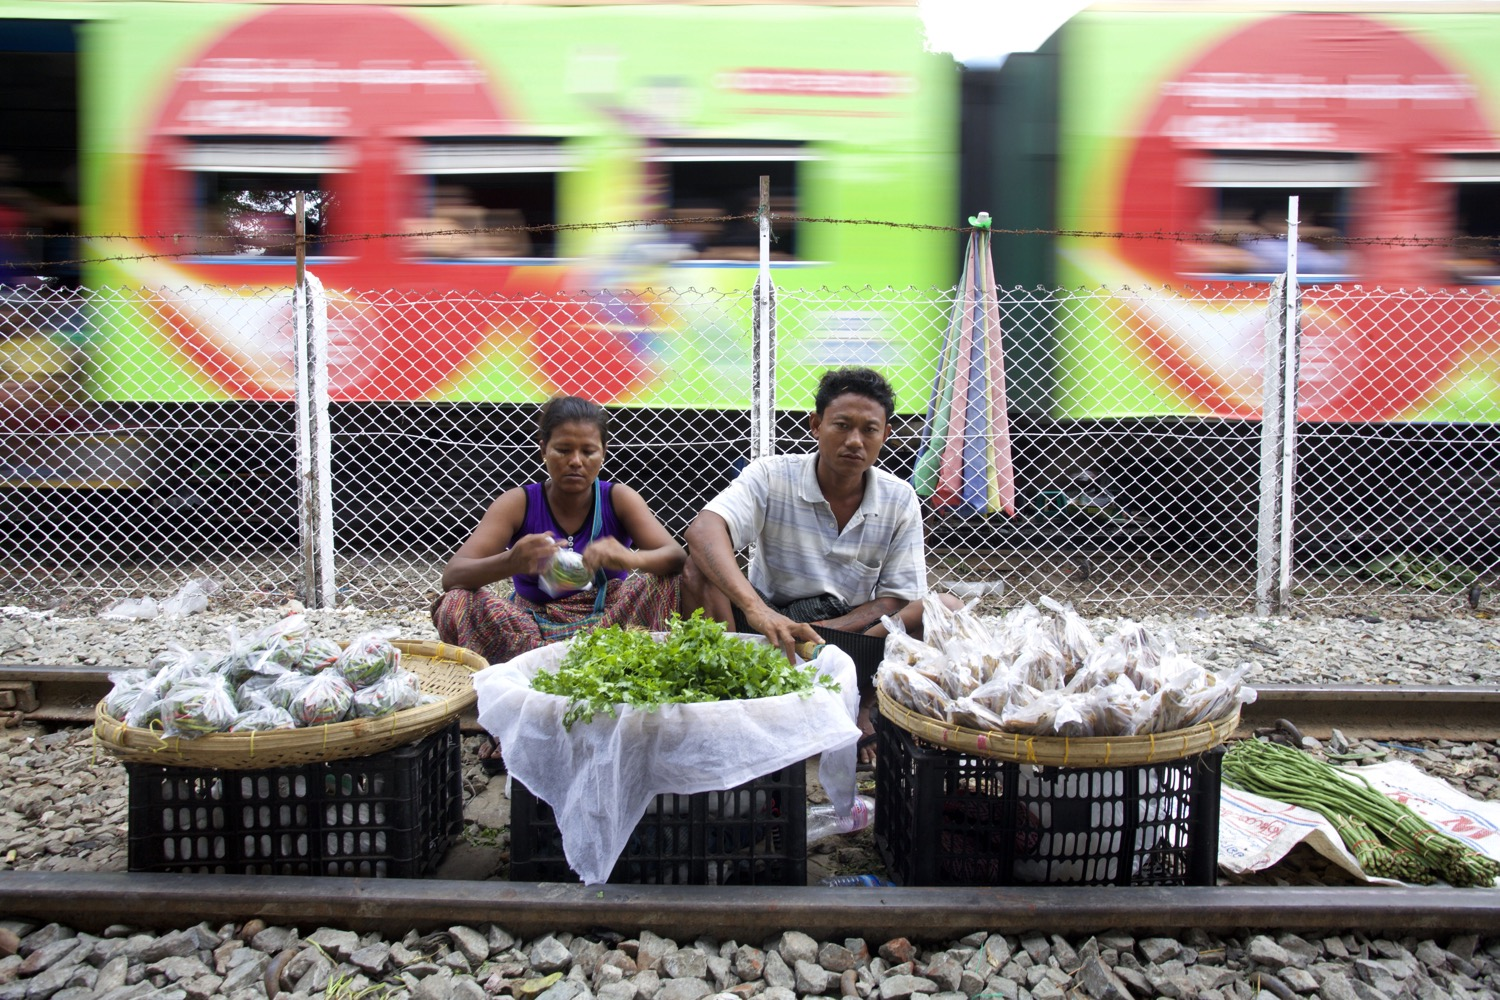 street market photography - vendors selling goods on train tracks